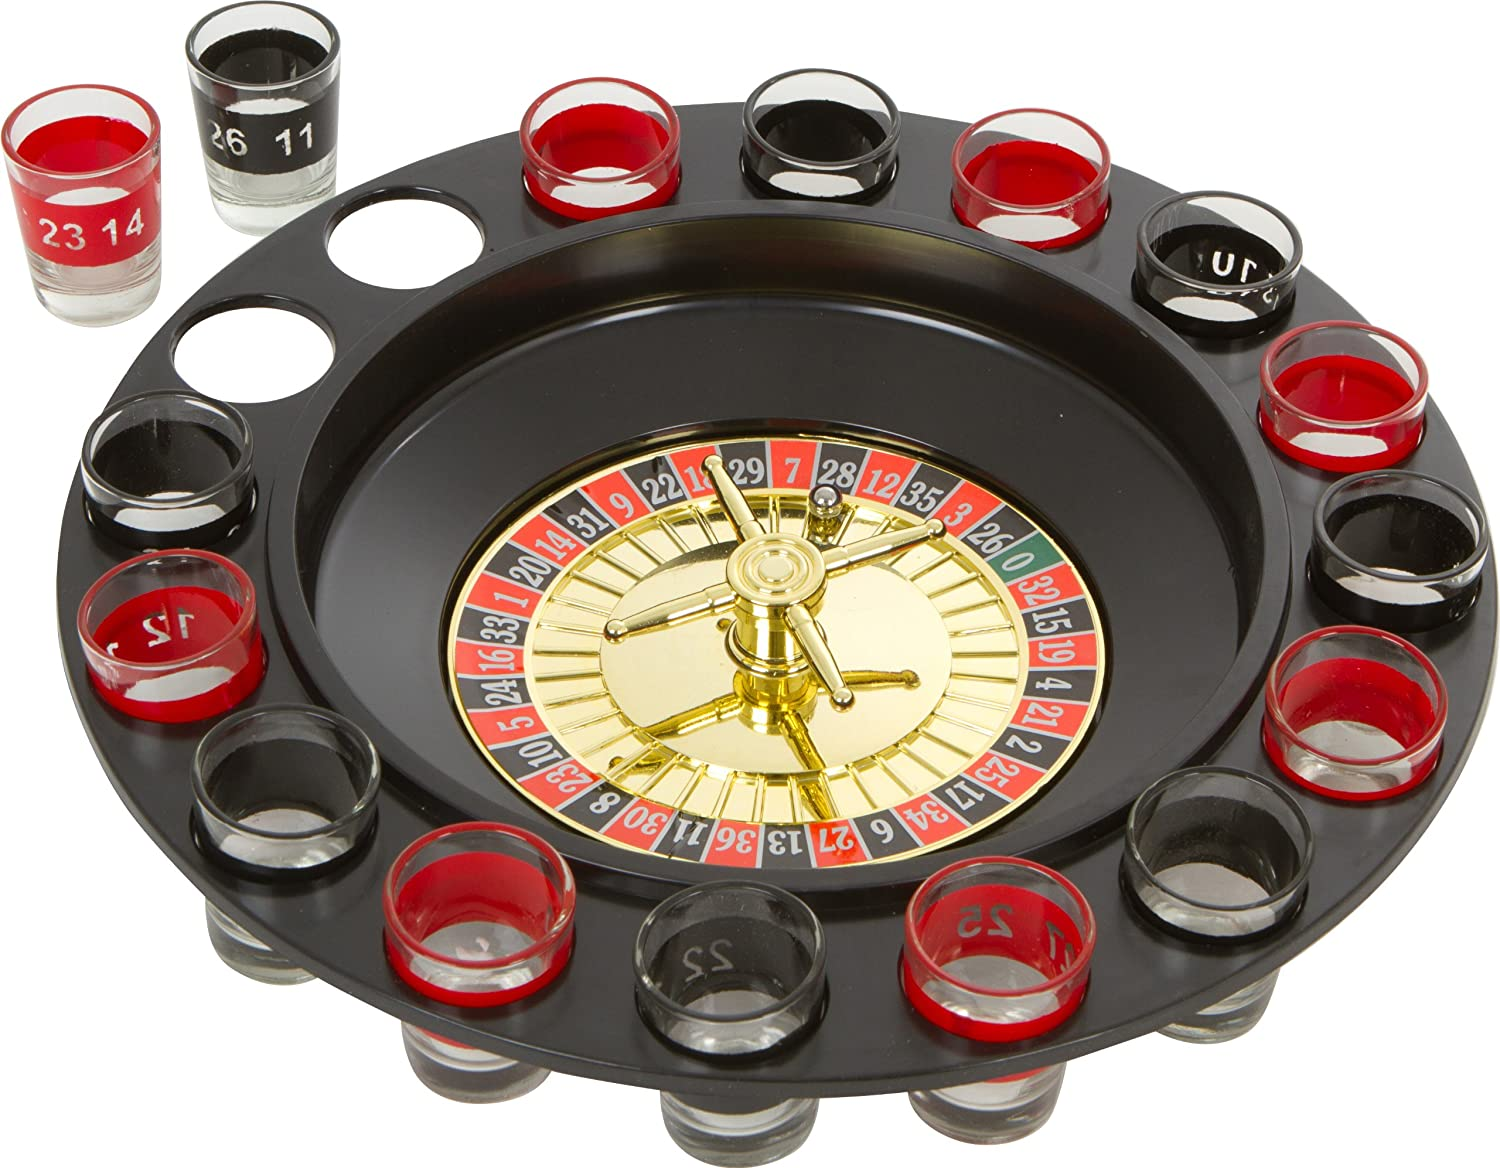 Rules to drinking roulette how do i win on a slot machine online duc casino